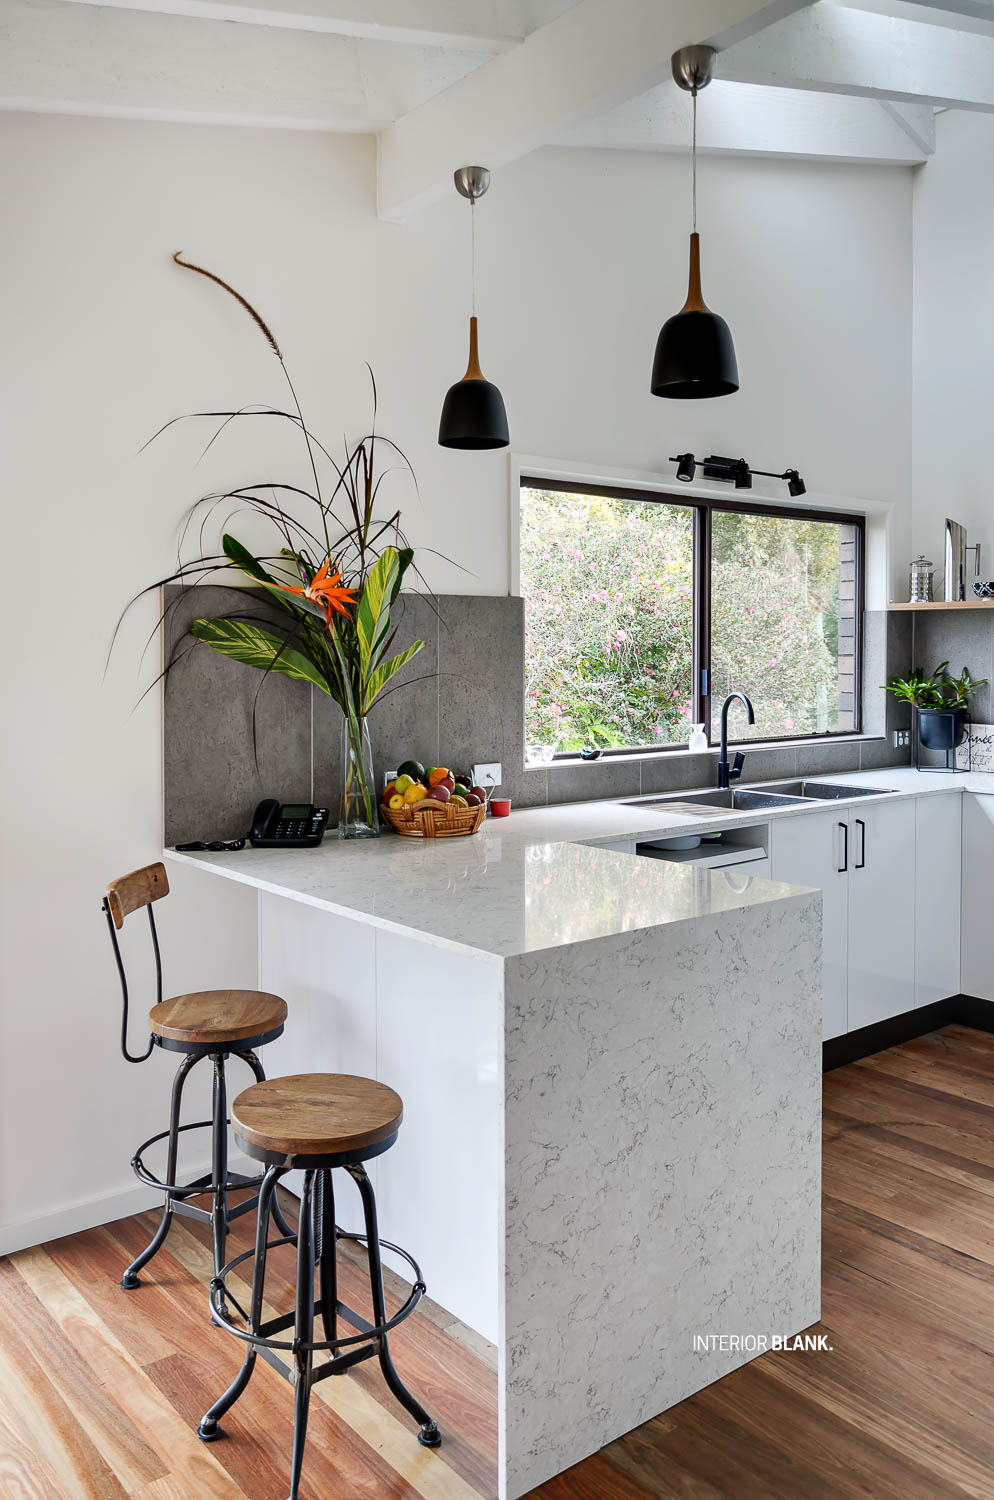 Kitchen-design-interiorblank-bilambil-gold-coast-design